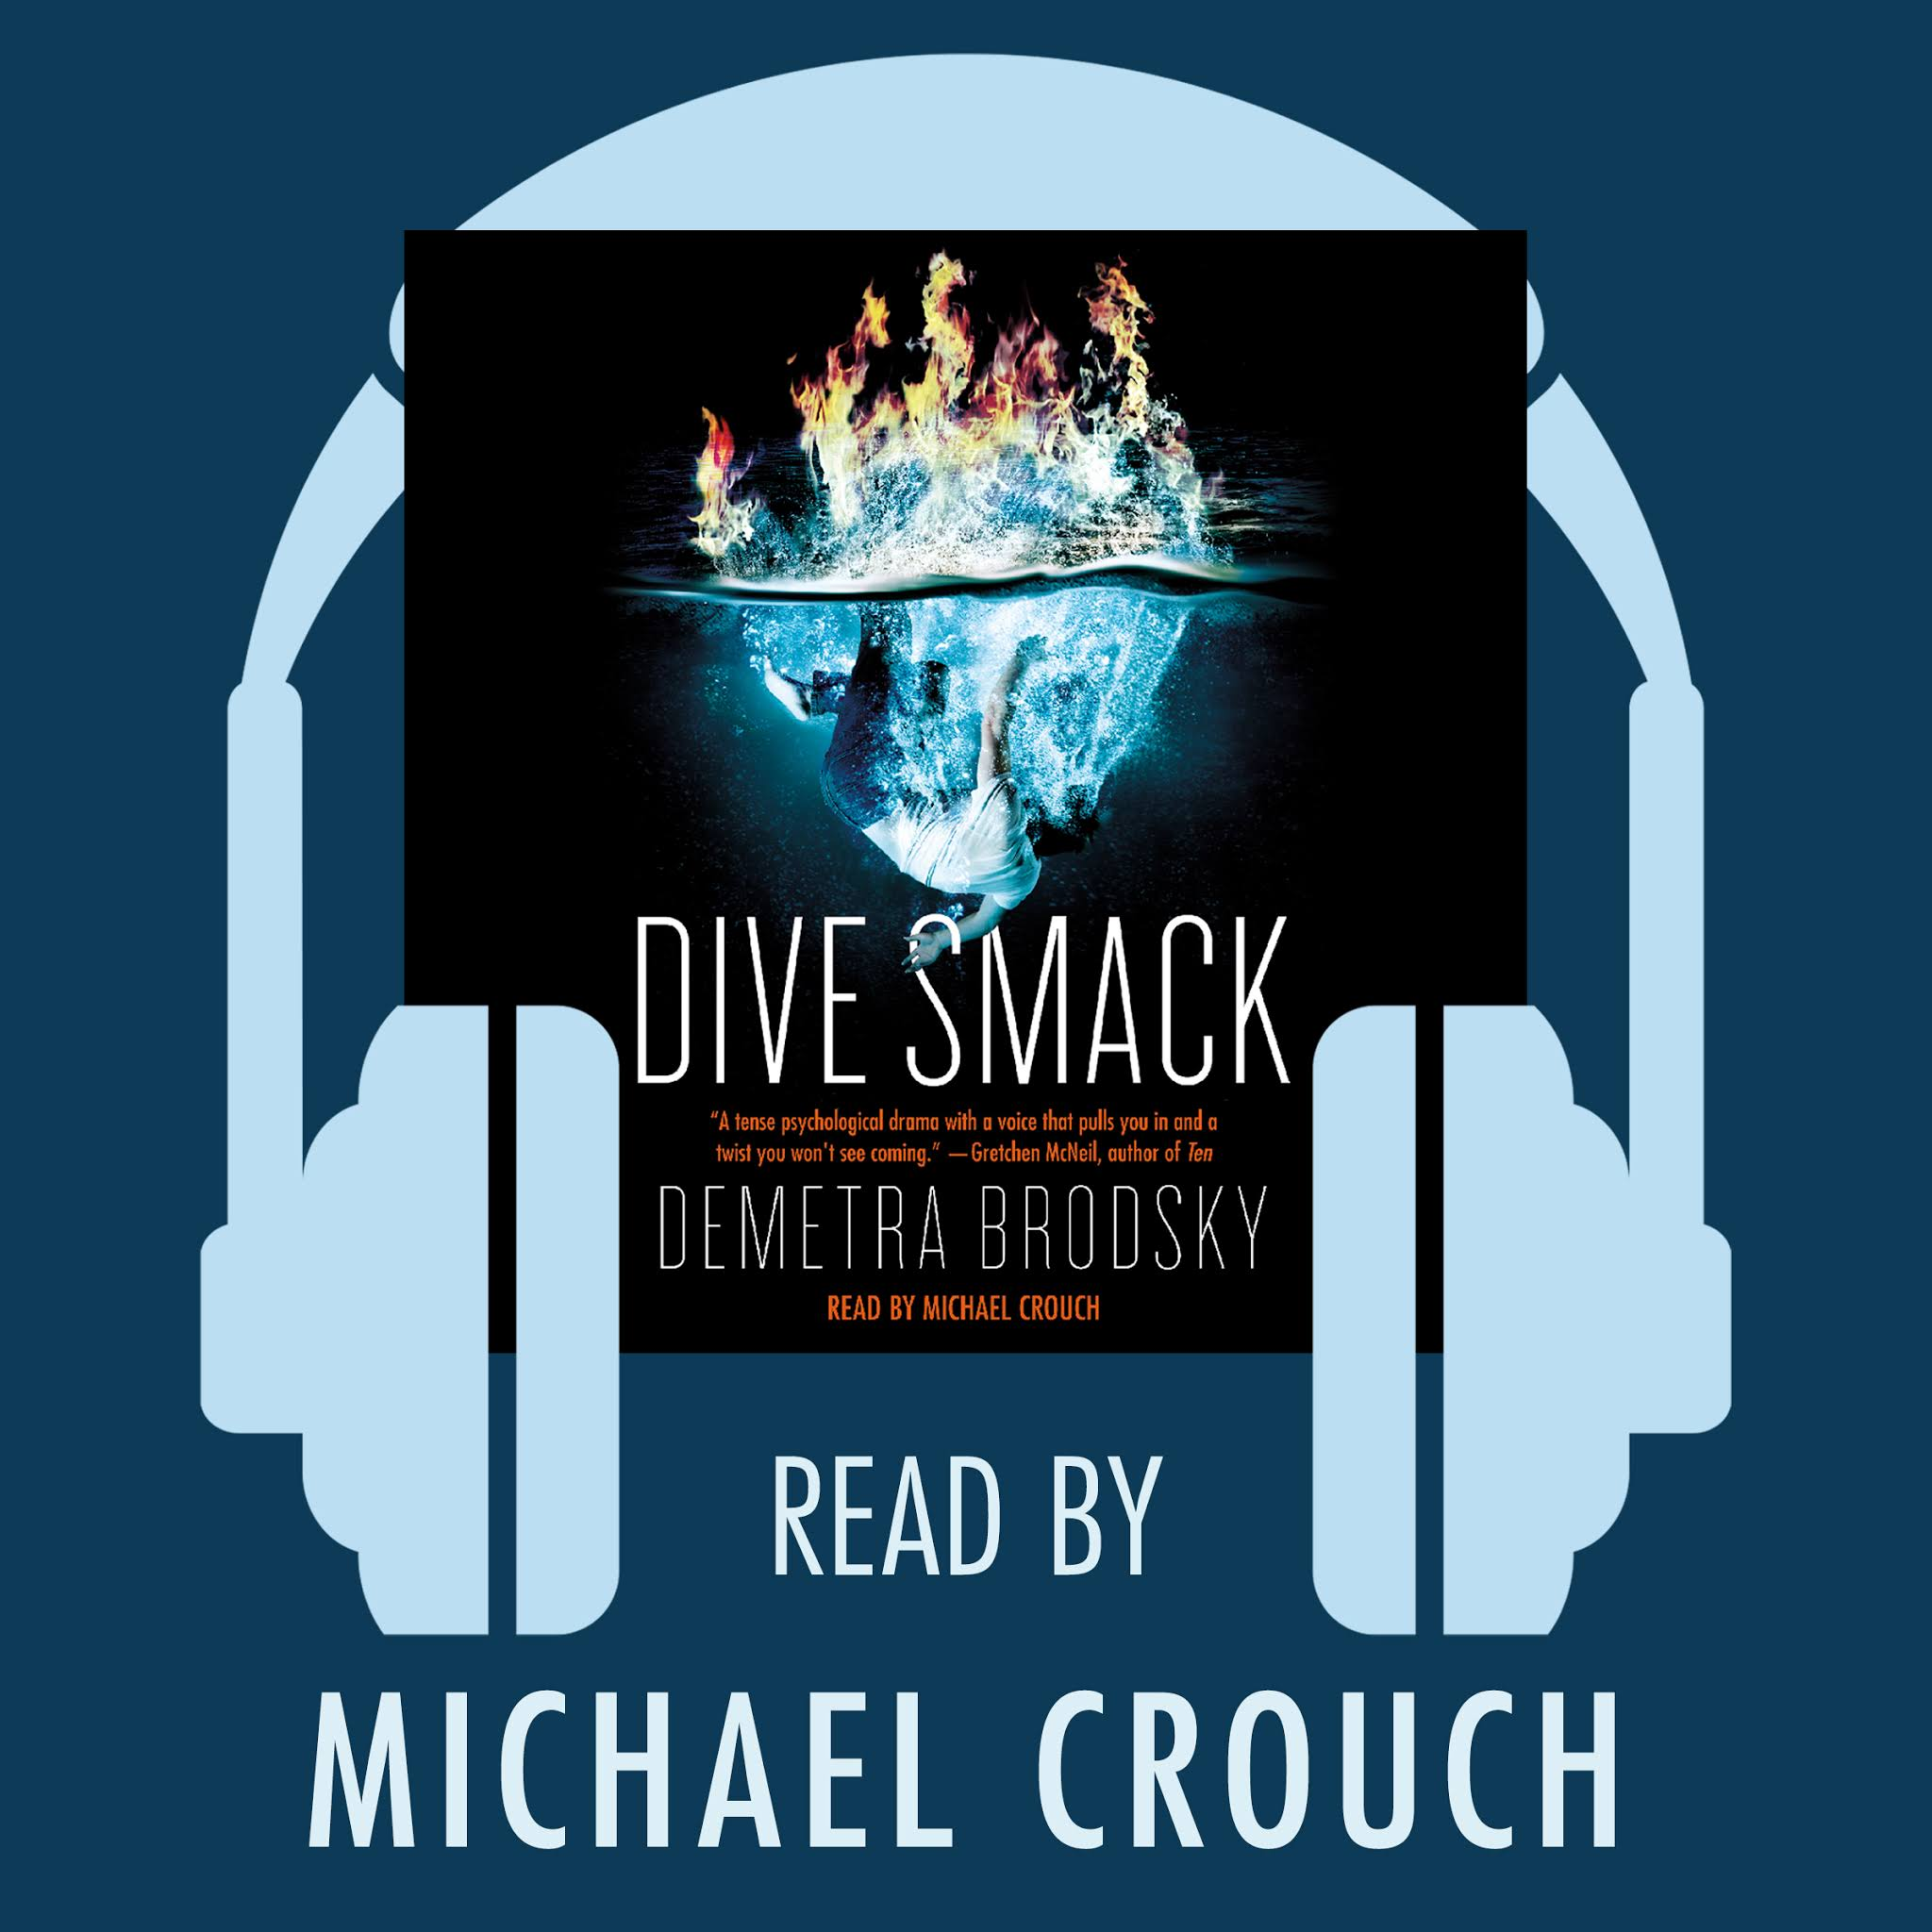 DIVE SMACK audiobook - Narrated by Michael Crouch.Michael Crouch is an Audie Award-winning actor based in New York City. His audiobook narration has earned multiple Earphones Awards from Audiofile Magazine and Best of the Year listings from Booklist, School Library Journal, and Publishers Weekly. NYT bestselling and award-winning authors include Rick Riordan, James Patterson, Stephenie Meyer, Madeleine L'Engle, Becky Albertelli, and Louis L'Amour.He can also be heard on national commercials, cartoons, video games, and the animé series Pokémon XYand Yu-Gi-Oh! Arc-V.